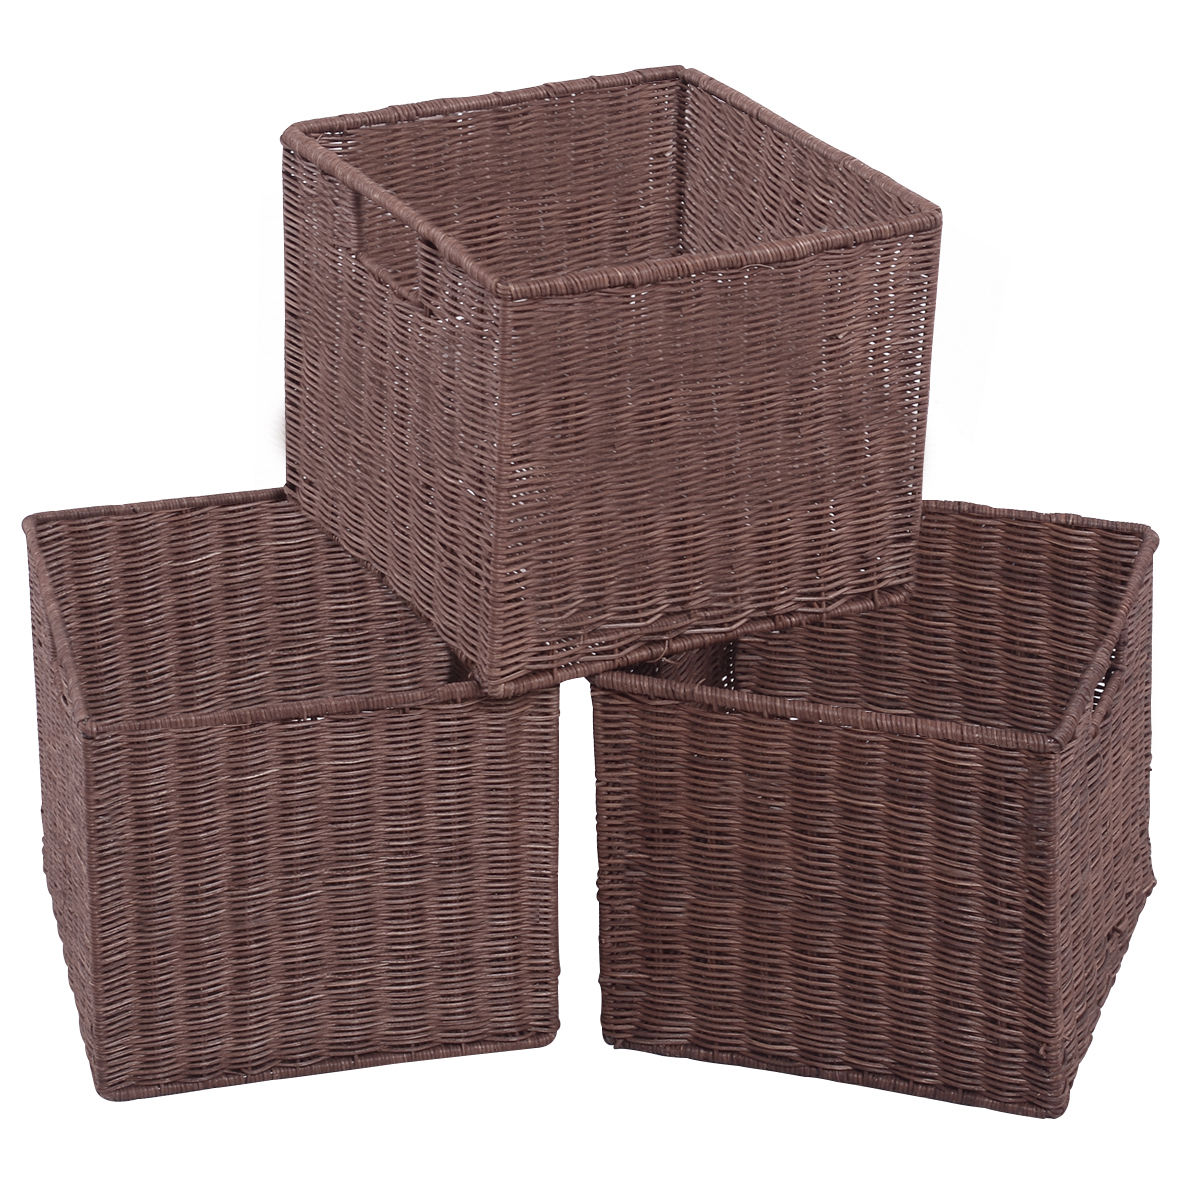 Gymax Set of 3 Wicker Rattan Storage Baskets Nest Nesting Cube Bin Box